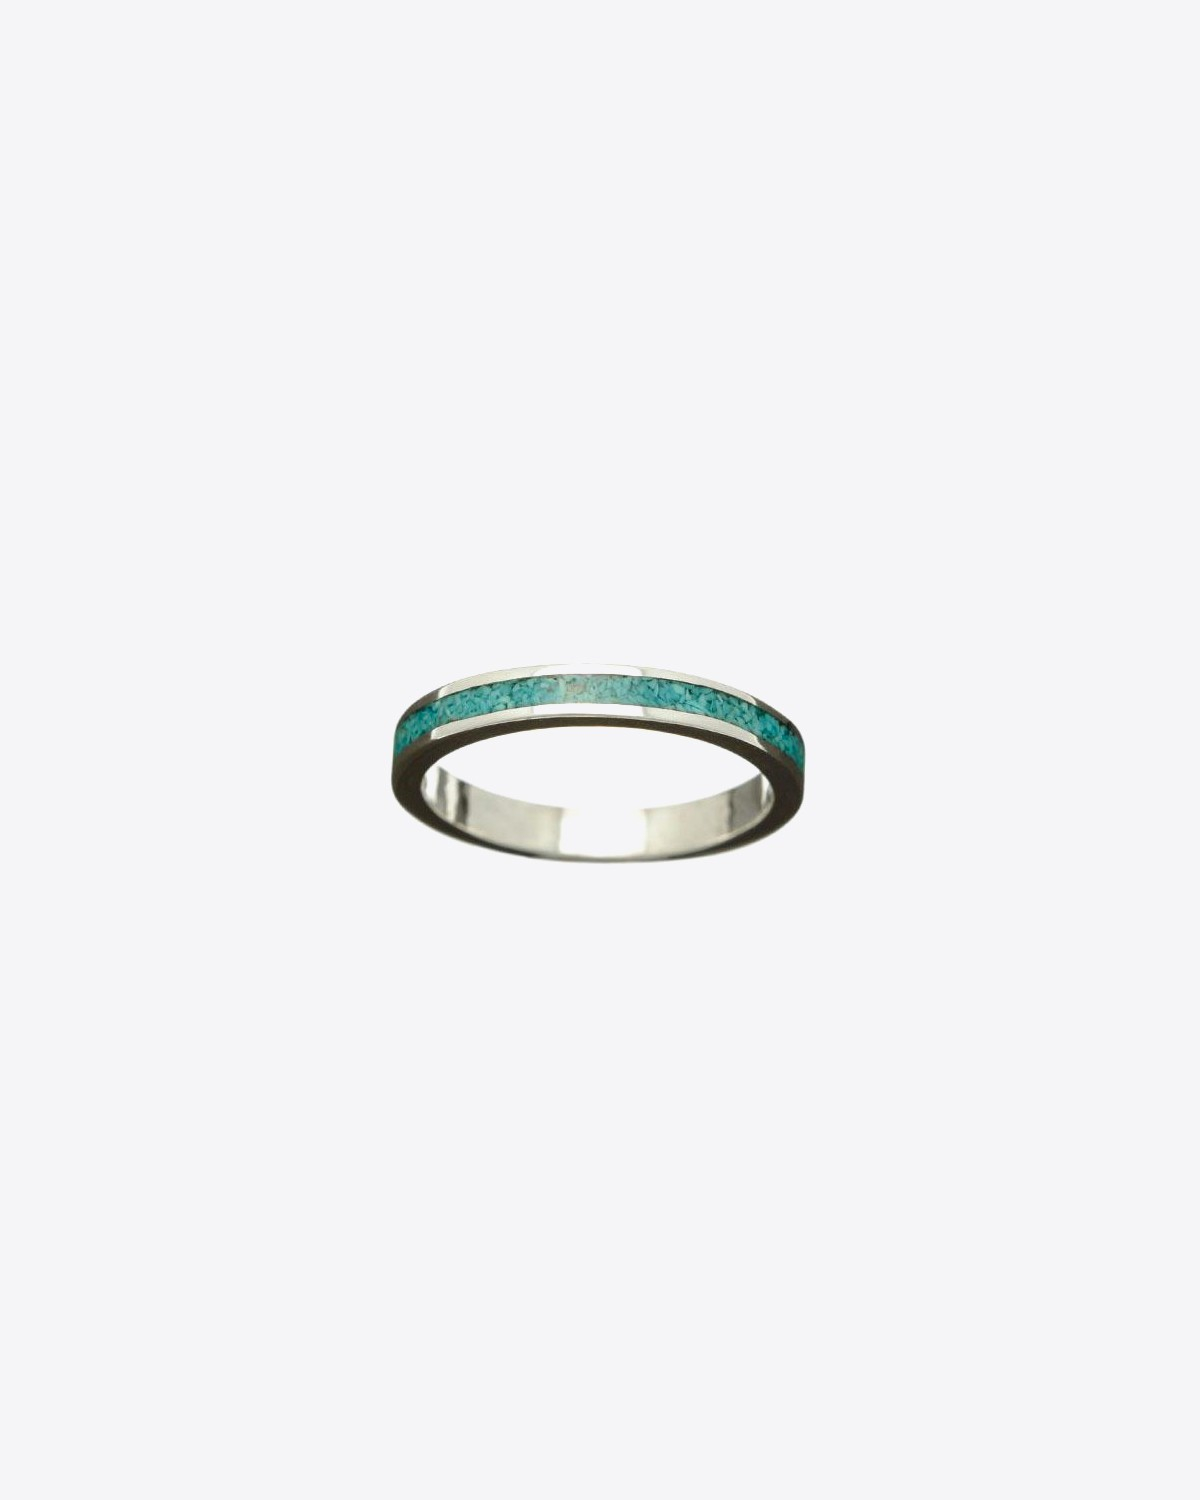 Harpo Permanent Bague Navajo Inlay Anneau Turquoise R730T